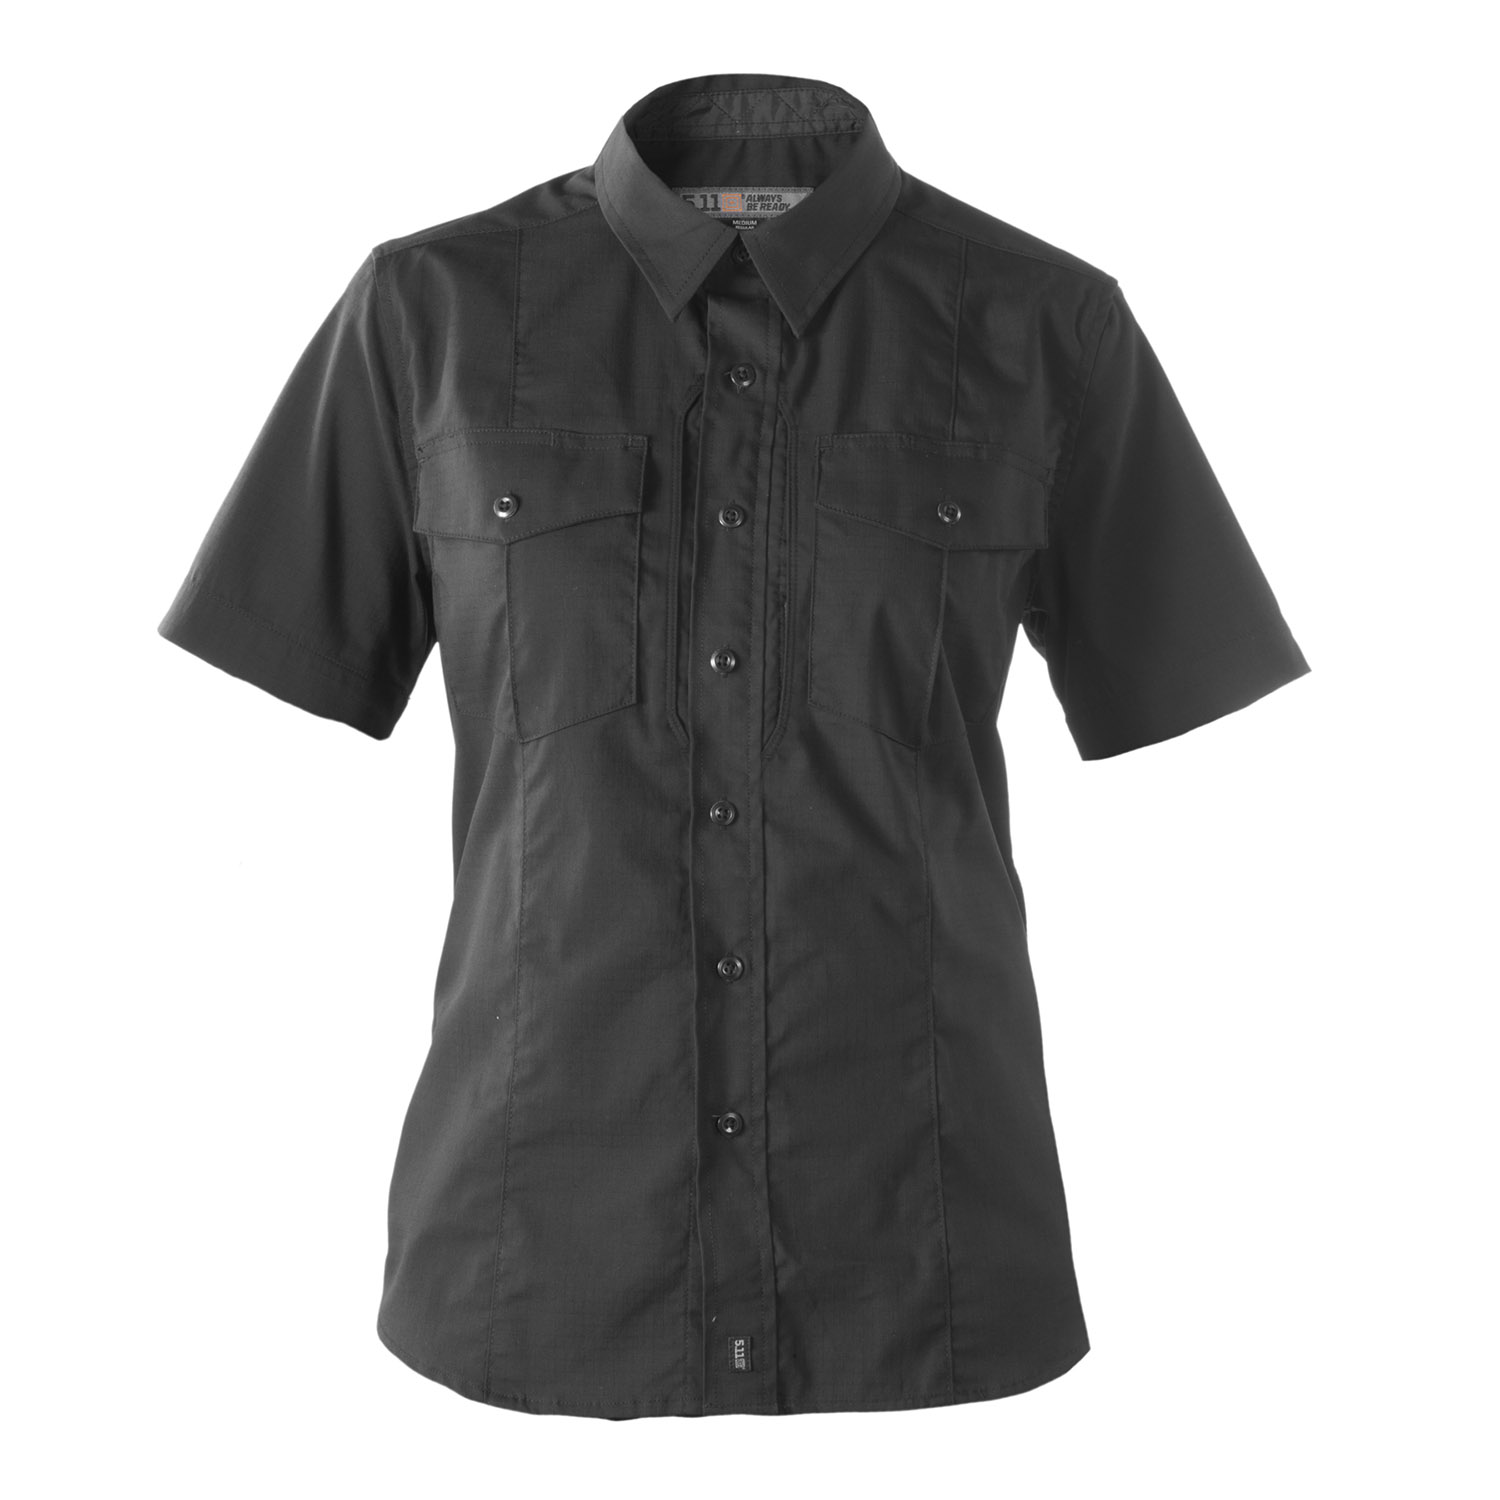 5.11 Tactical Women's Short Sleeve Class B Stryke PDU Shirt